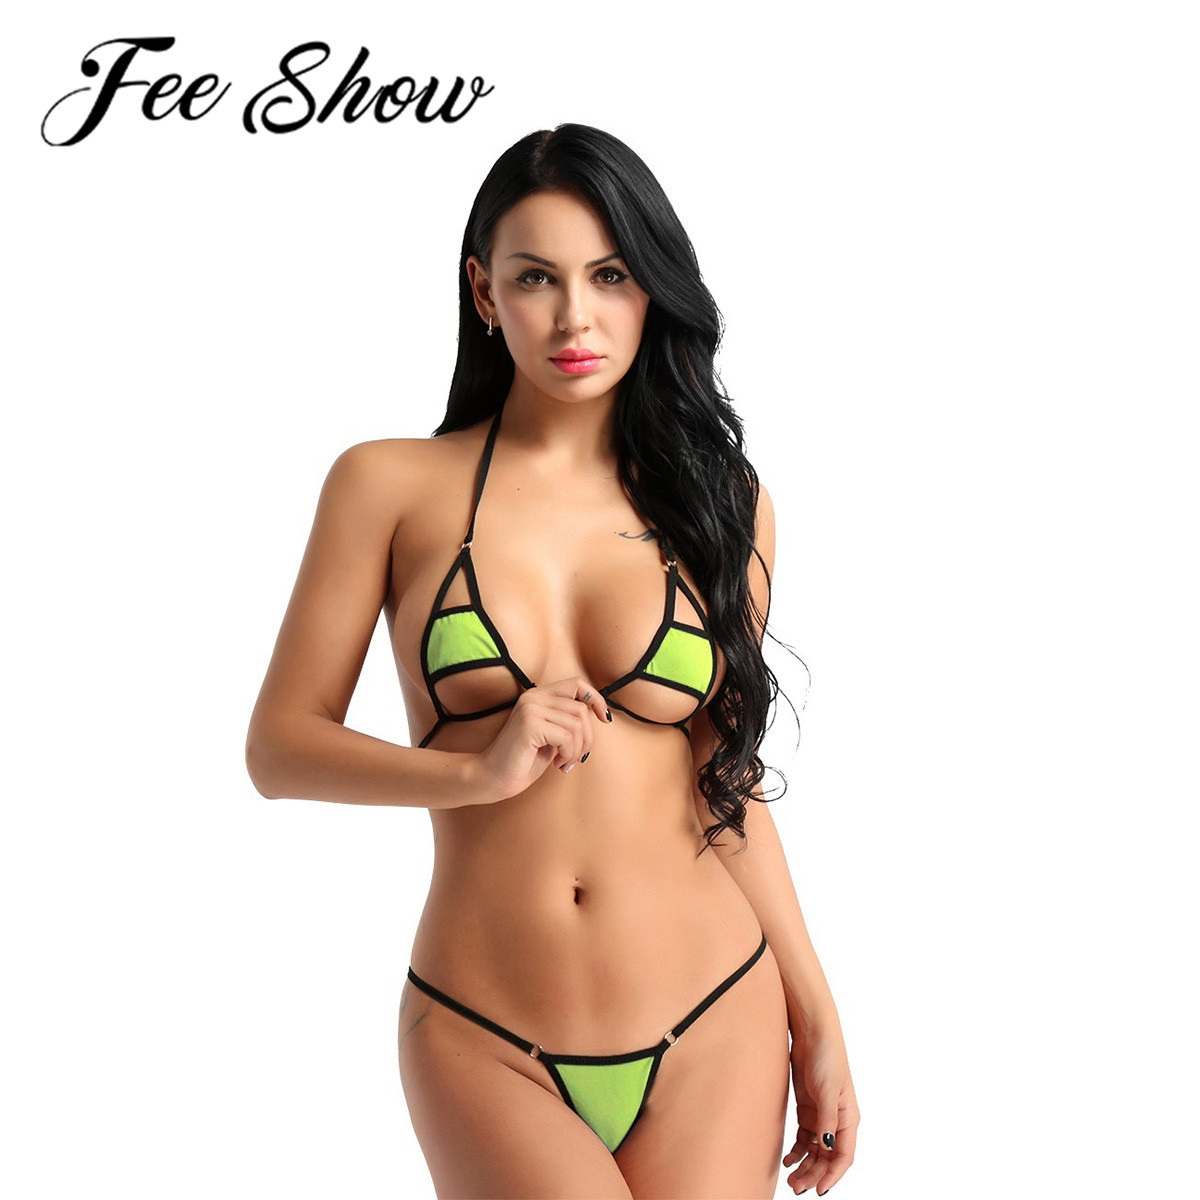 Women Faux Leather Bikini Halter Crop Top Lace Up Lingerie Set G-String Costume